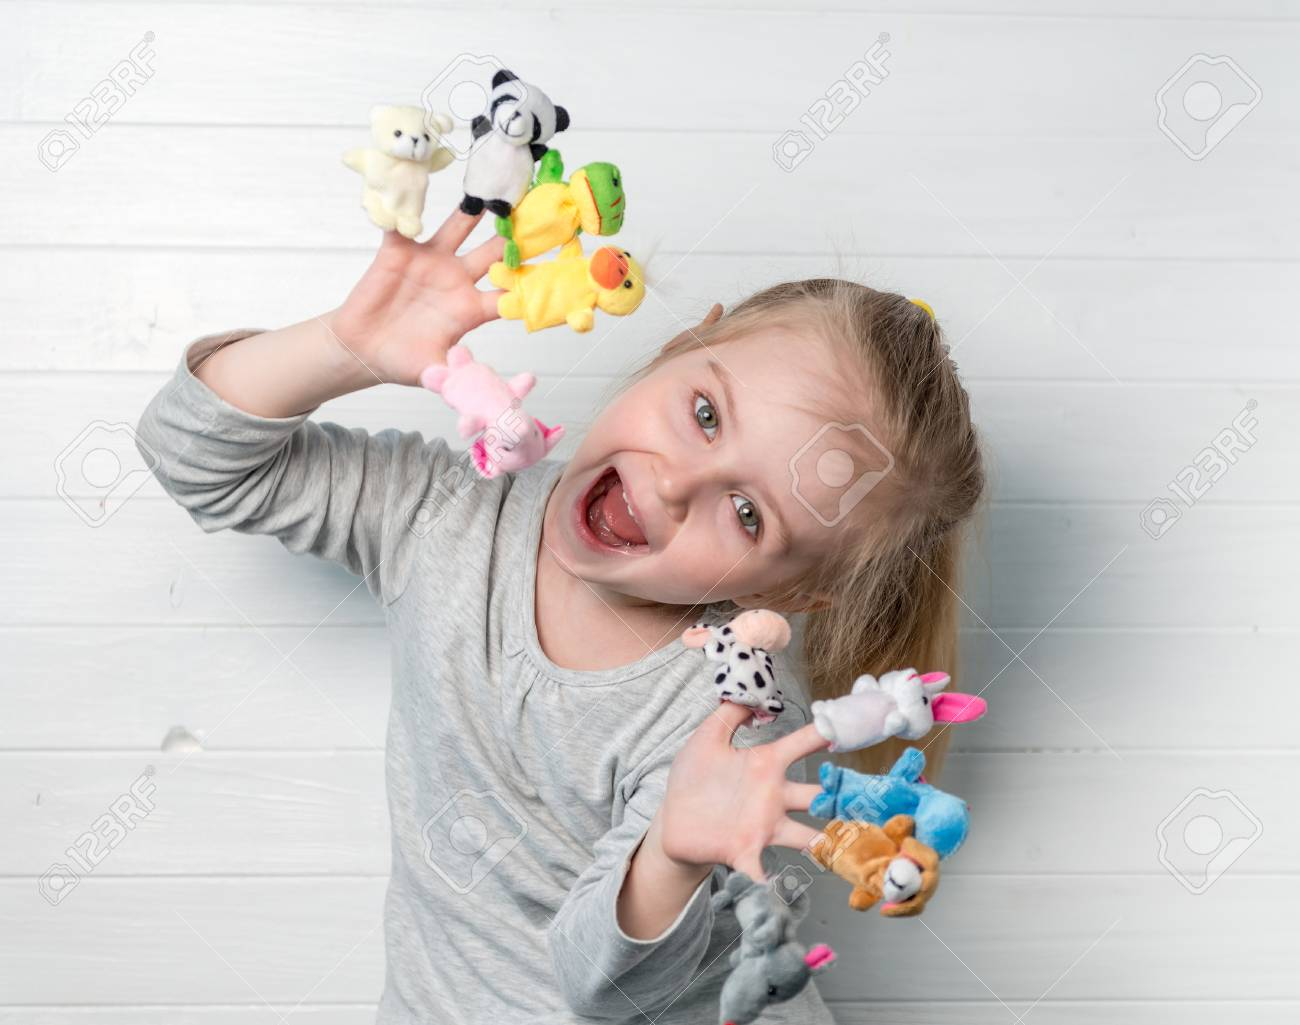 girl with doll puppets on her hands - 76604277